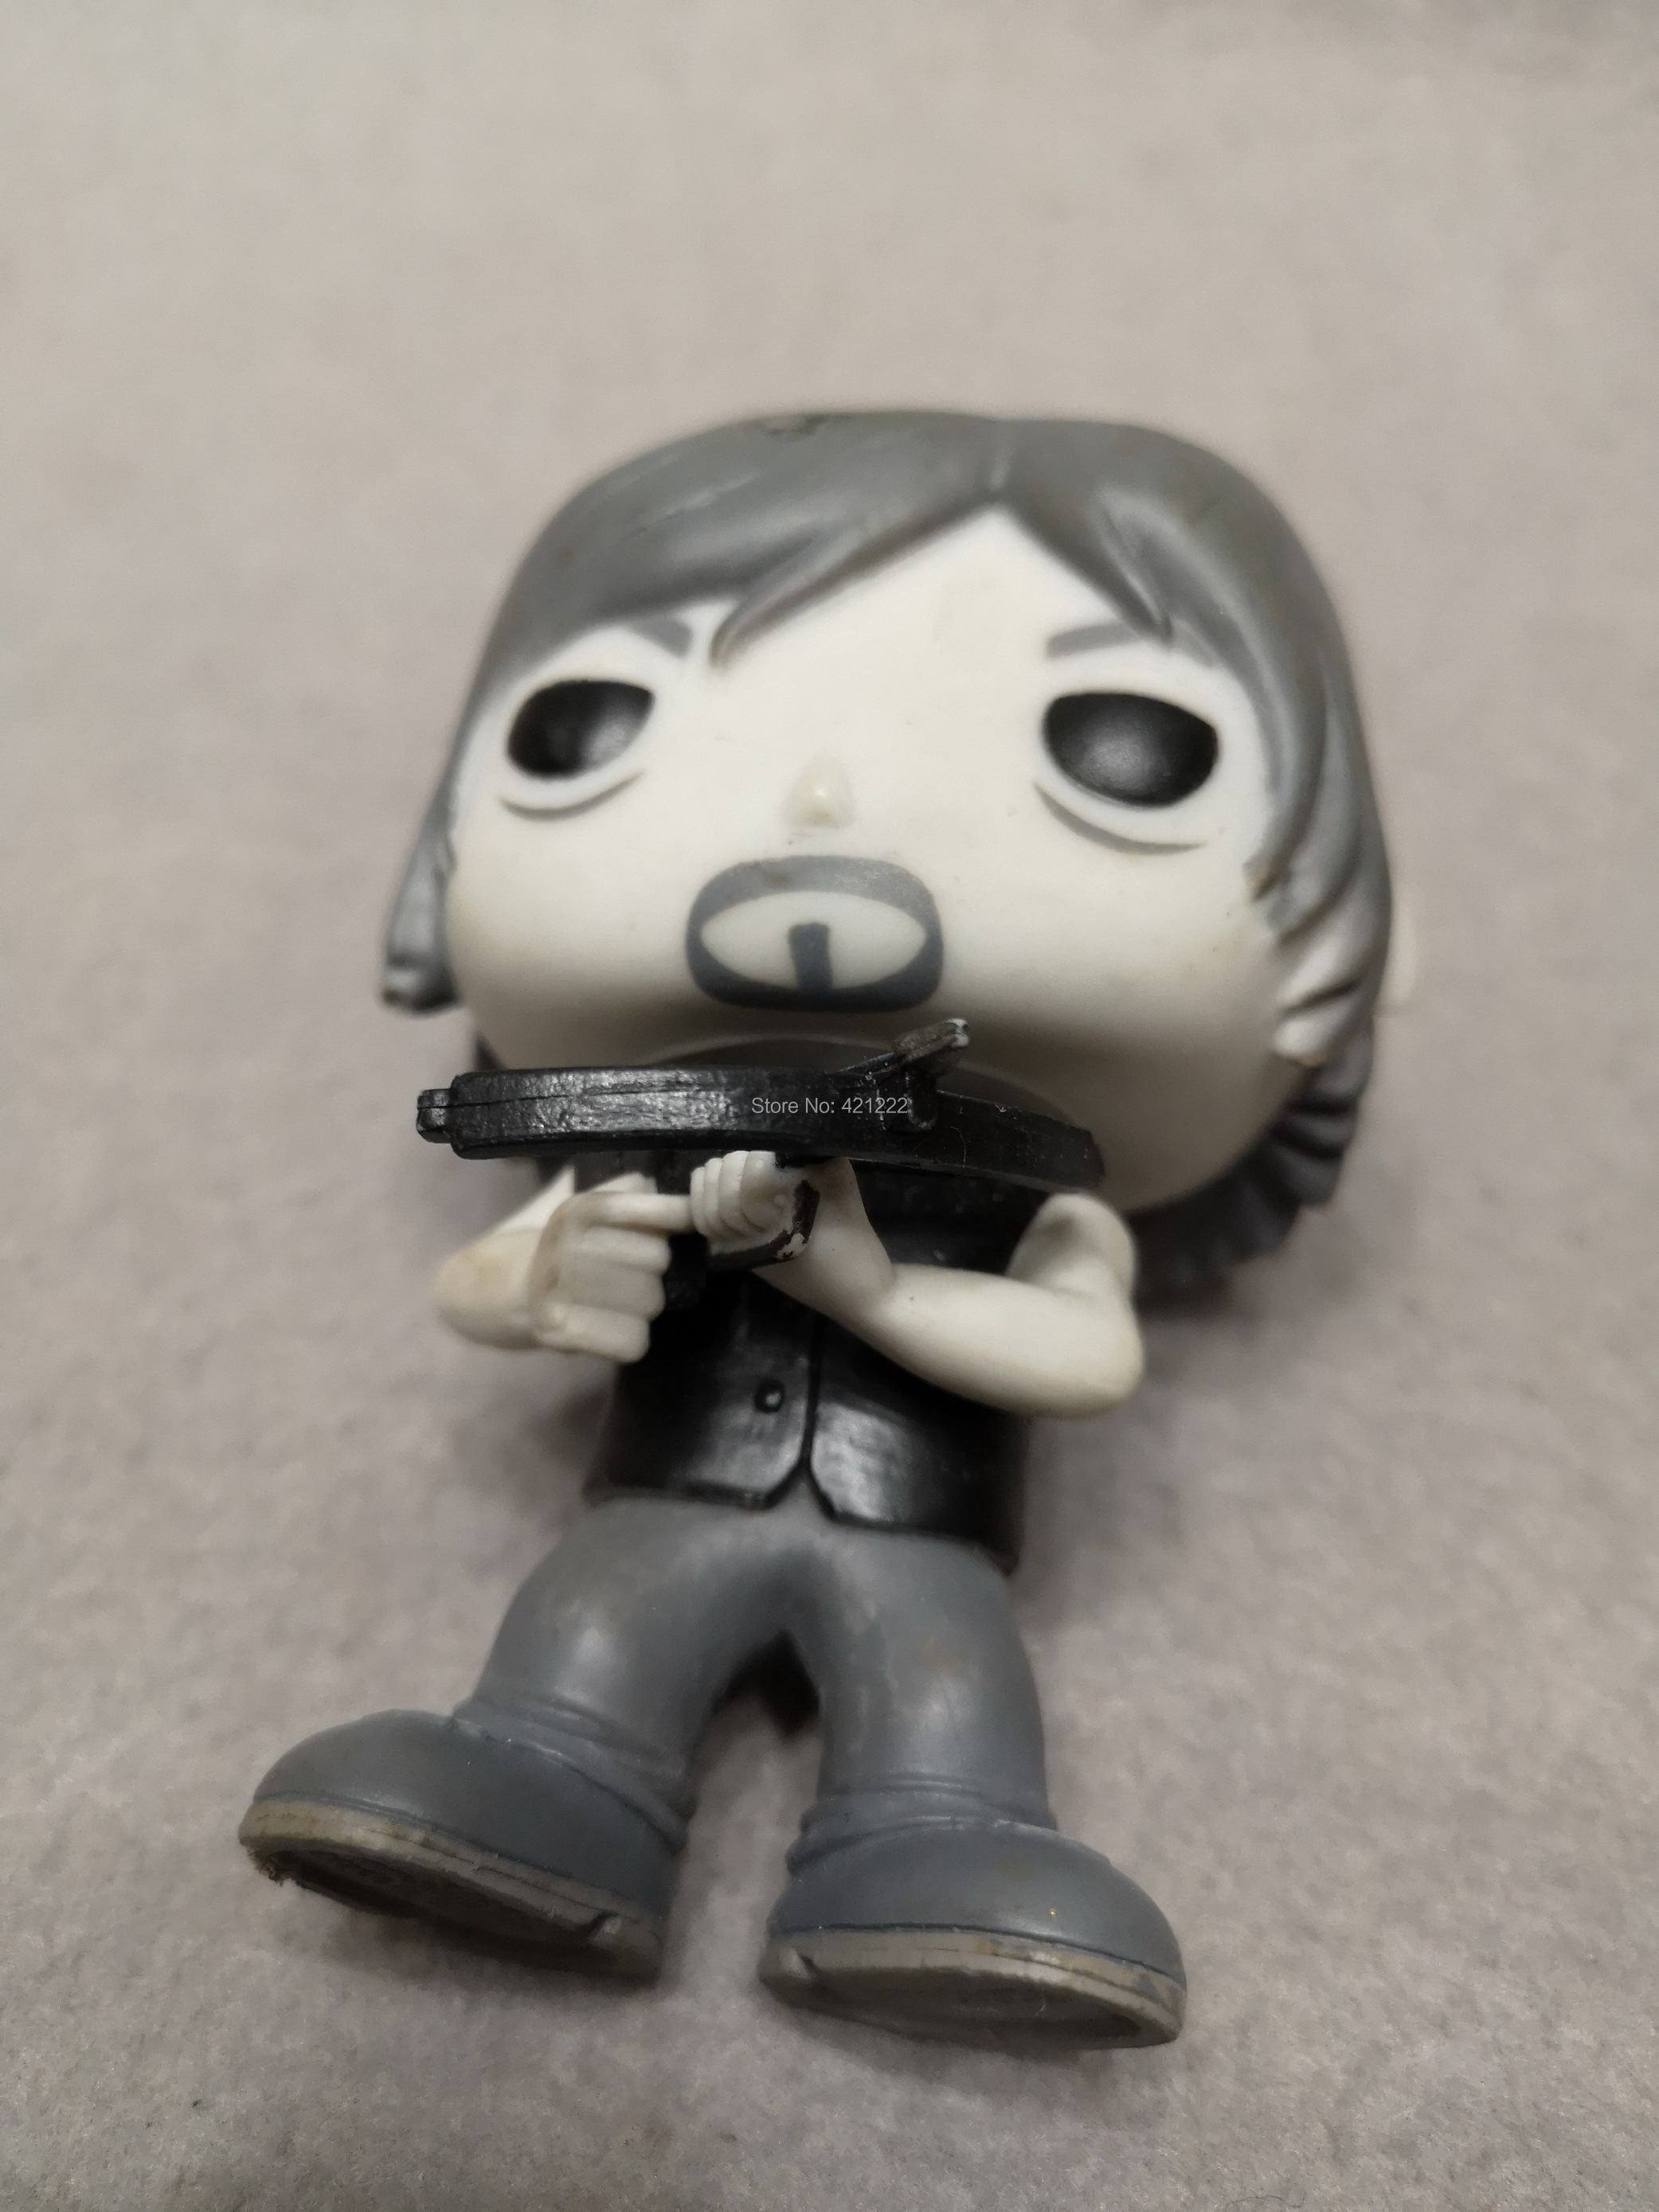 56f9ff7d575 NO BOX ORIGINAL FUNKO POP Television The Walking Dead DARYL DIXON  145  Walmart Exclusive BLACK   WHITE Vinyl Figure Action-in Action   Toy Figures  from Toys ...